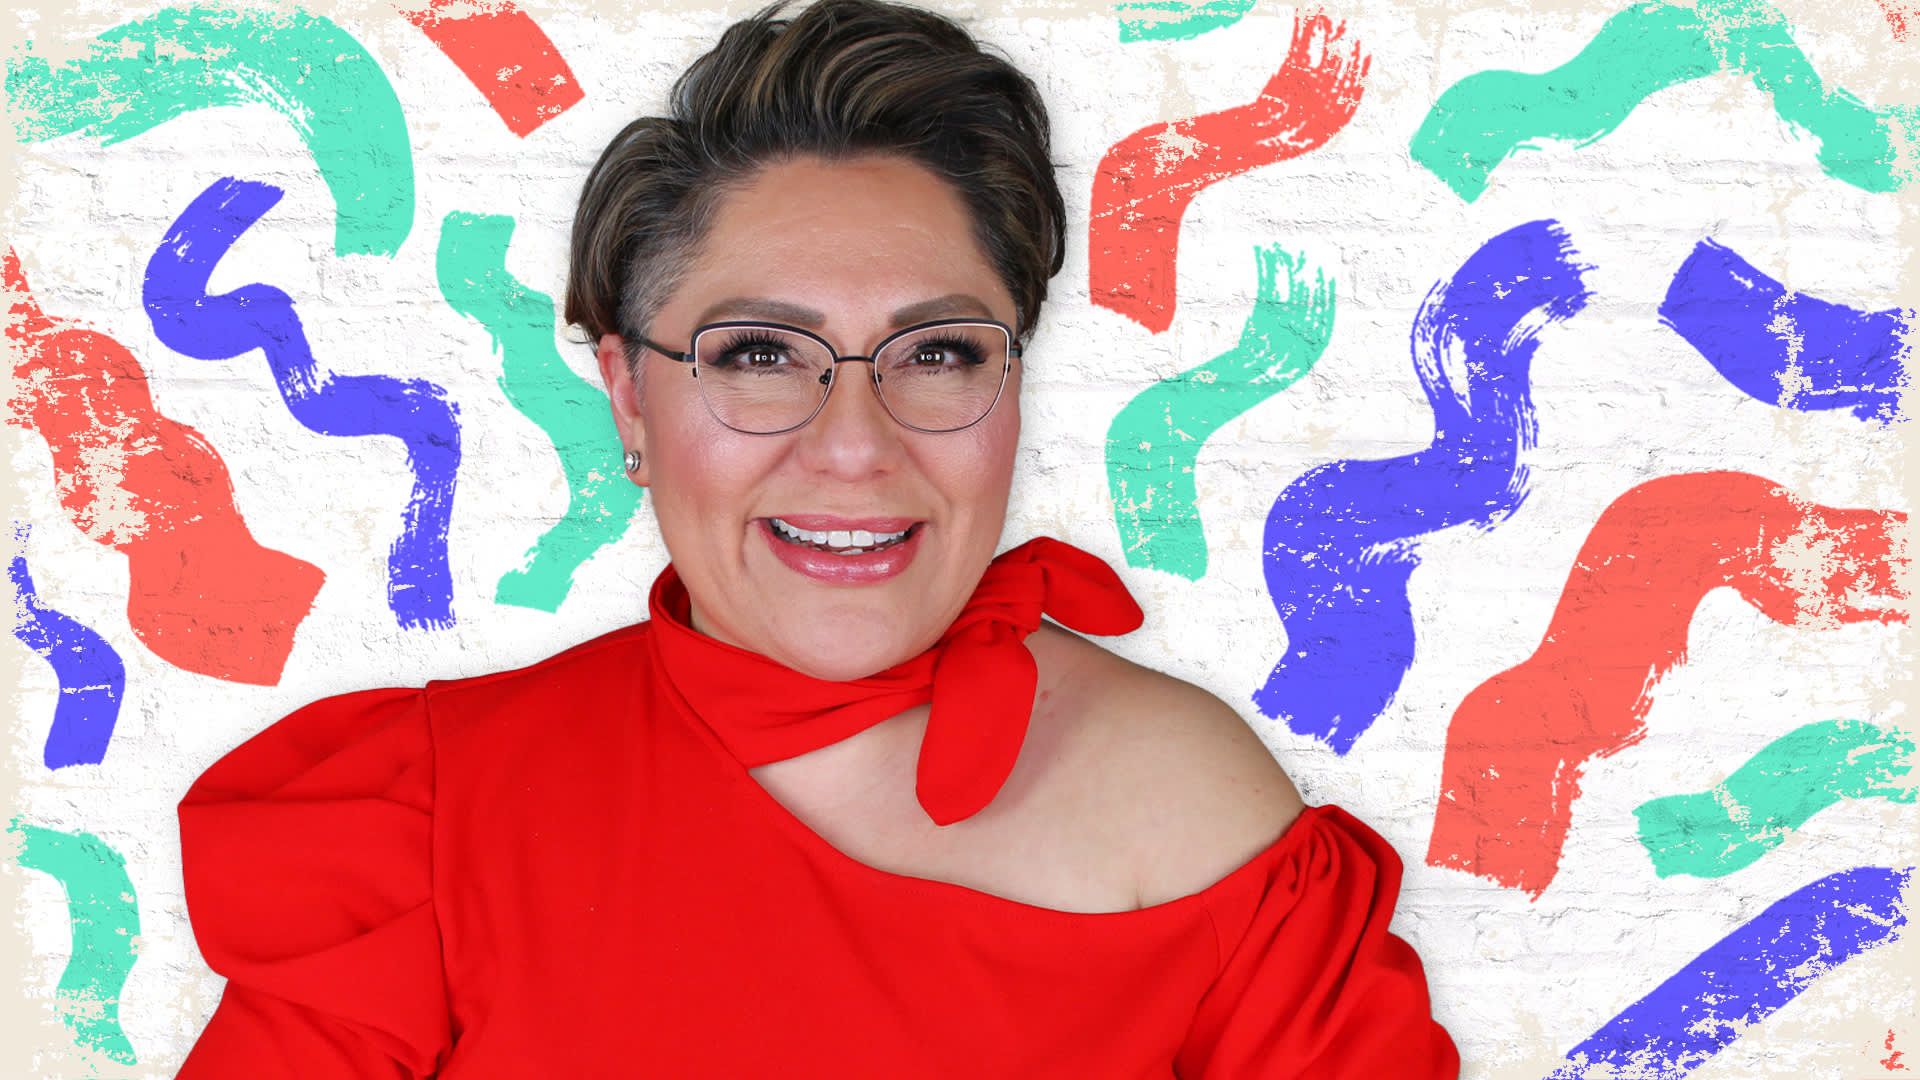 Dr. Diana Canto-Sims, Founder and Owner, Buena Vista Optical